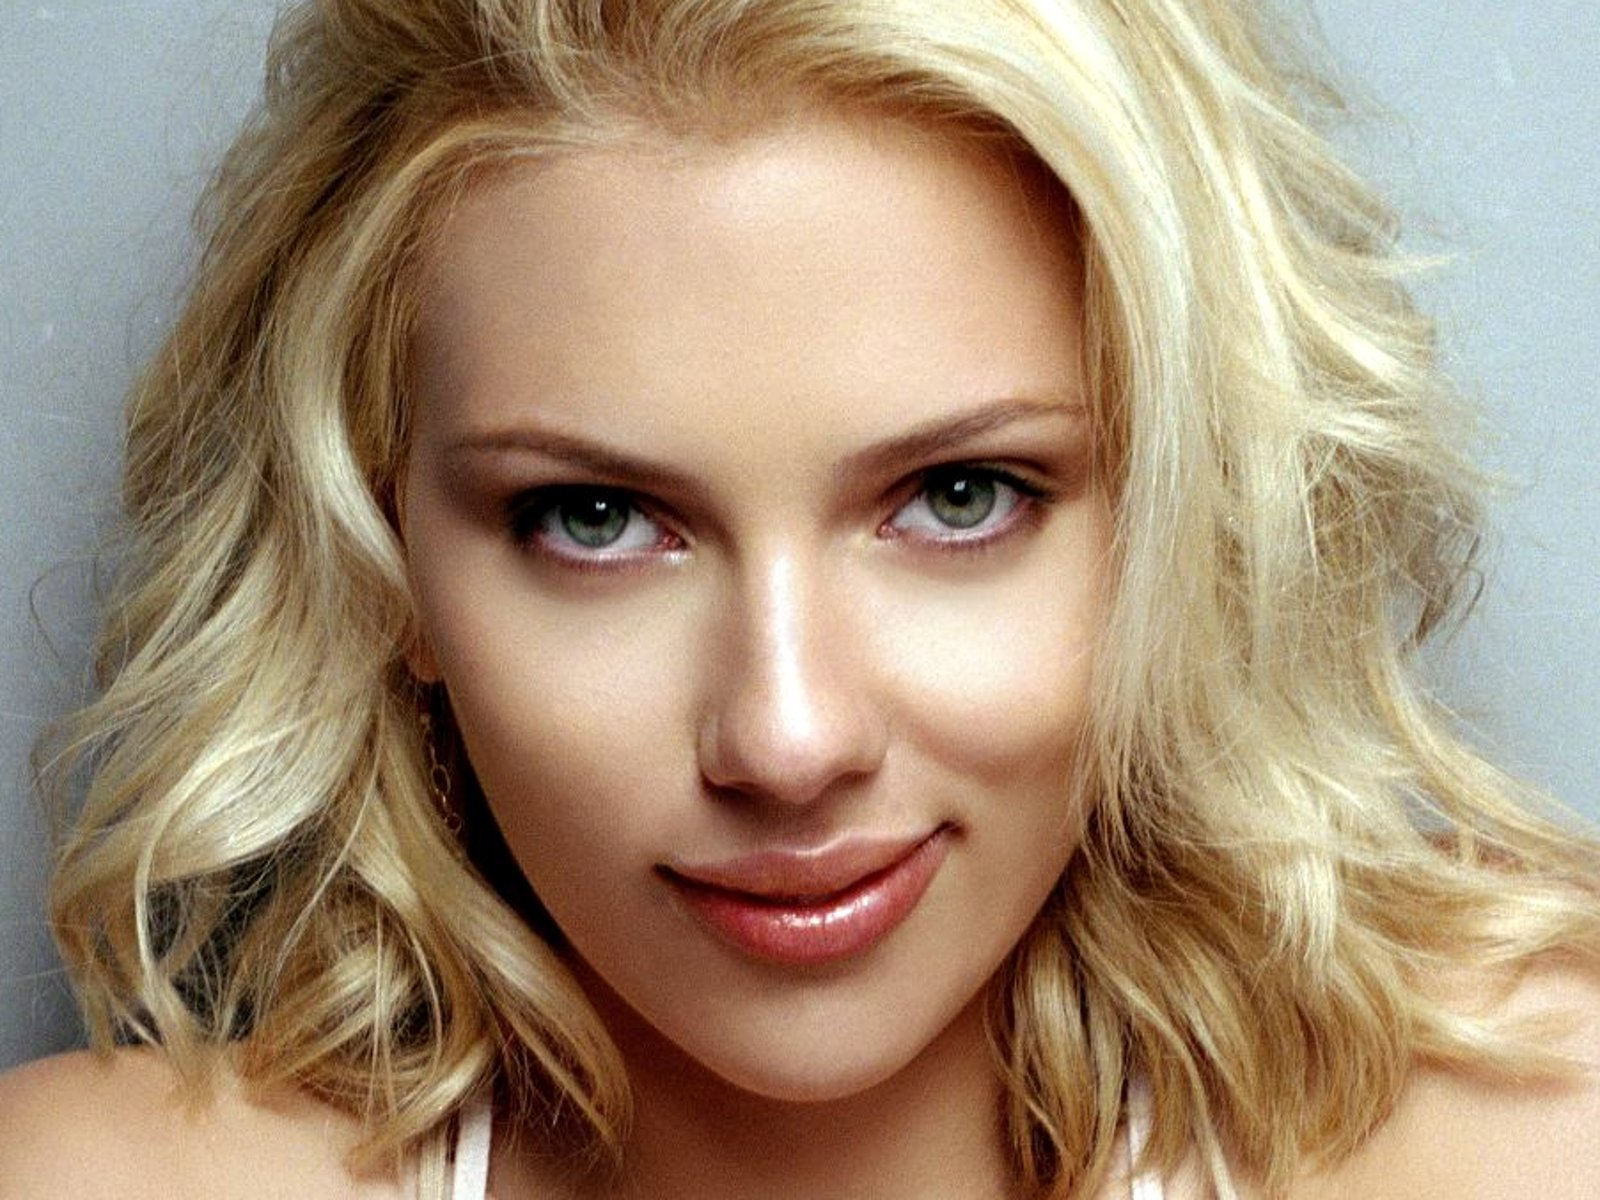 scarlett johansson singscarlett johansson set it all free, scarlett johansson 2017, scarlett johansson 2016, scarlett johansson films, scarlett johansson фото, scarlett johansson sing, scarlett johansson short hair, scarlett johansson wallpaper, scarlett johansson insta, scarlett johansson photoshoots, scarlett johansson tattoo, scarlett johansson wiki, scarlett johansson daughter, scarlett johansson фильмы, scarlett johansson песни, scarlett johansson movies, scarlett johansson fan site, scarlett johansson set it all free lyrics, scarlett johansson rost, scarlett johansson i don't wanna